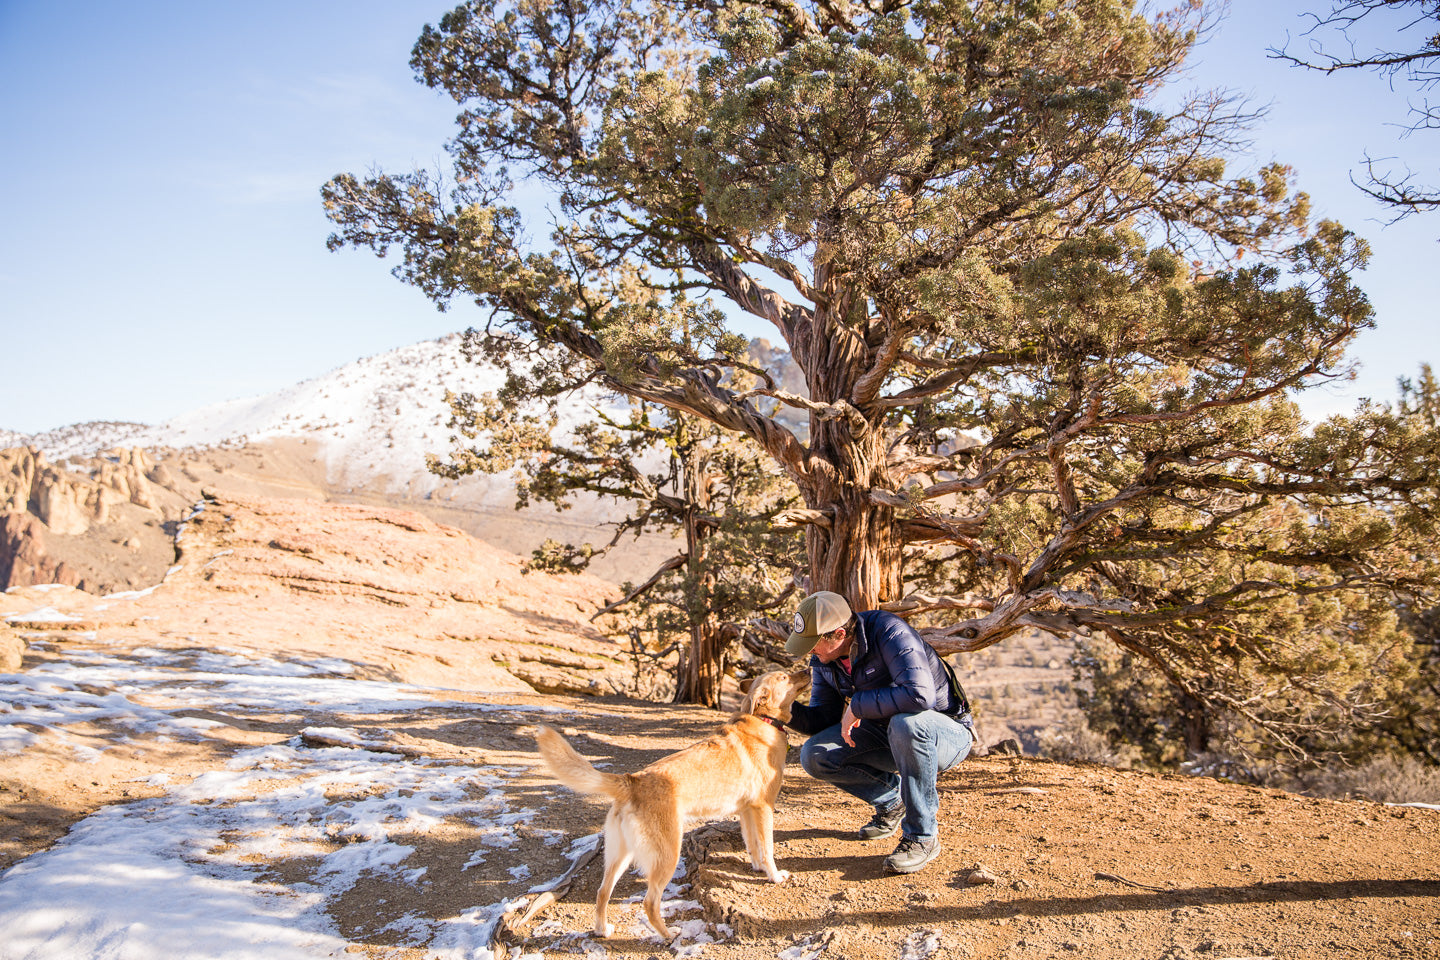 Picture of David and his Dog Ginger out in a desert scene